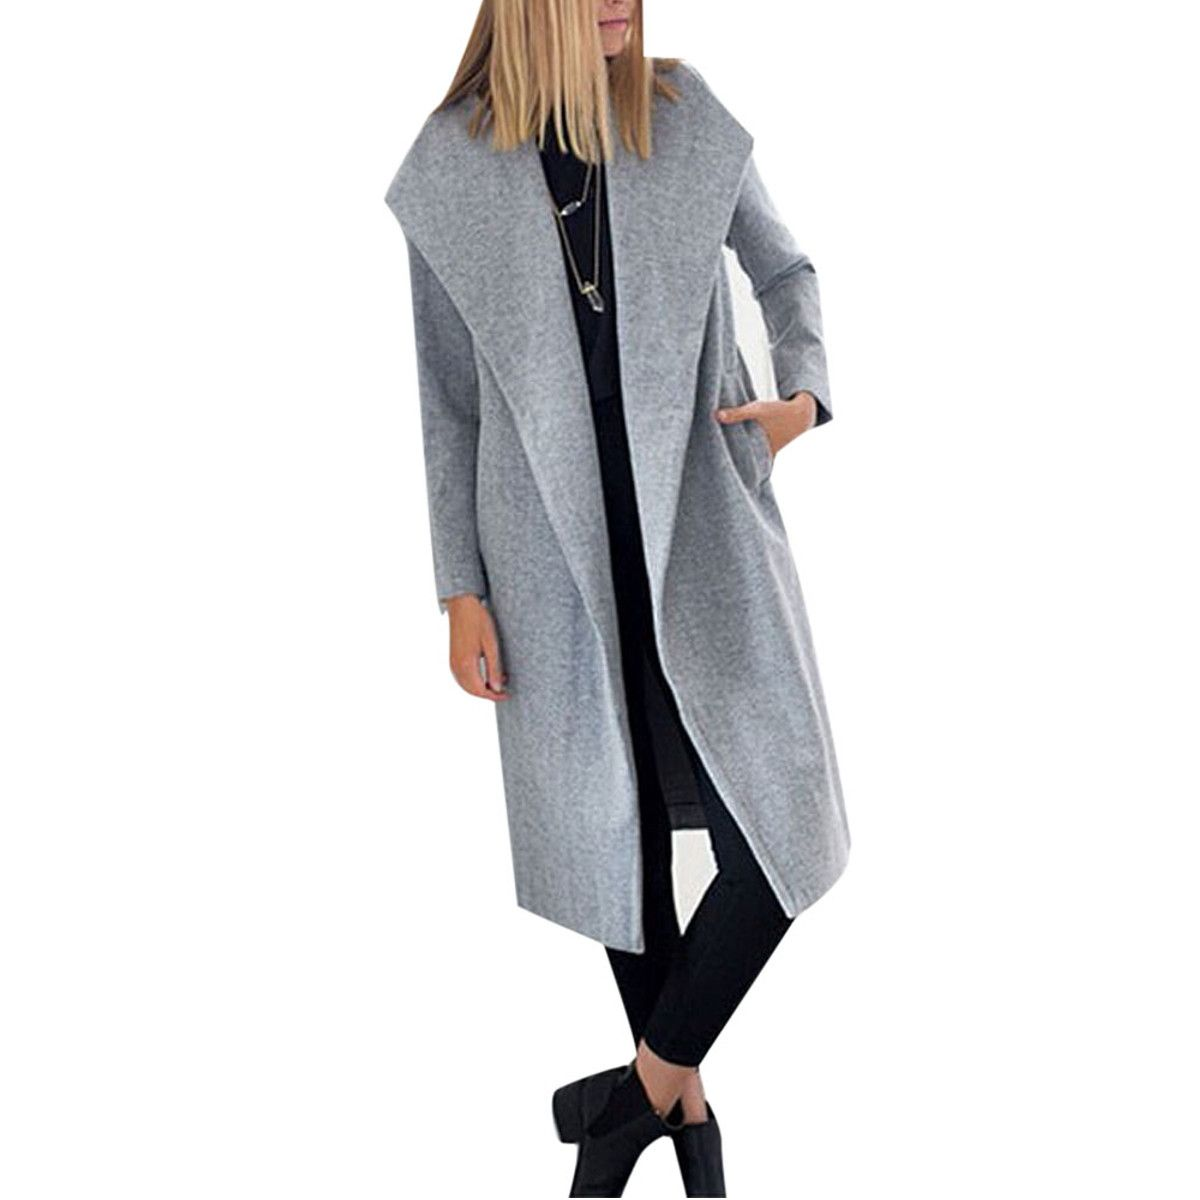 Cheap coats land, Buy Quality cardigan coat directly from China coat children Suppliers:       chaquetas mujer 2015 Fashion Spring Autumn Long Sleeve Slim Turn-Down Lapel Collar Side Zipper Jacket Women Coat C